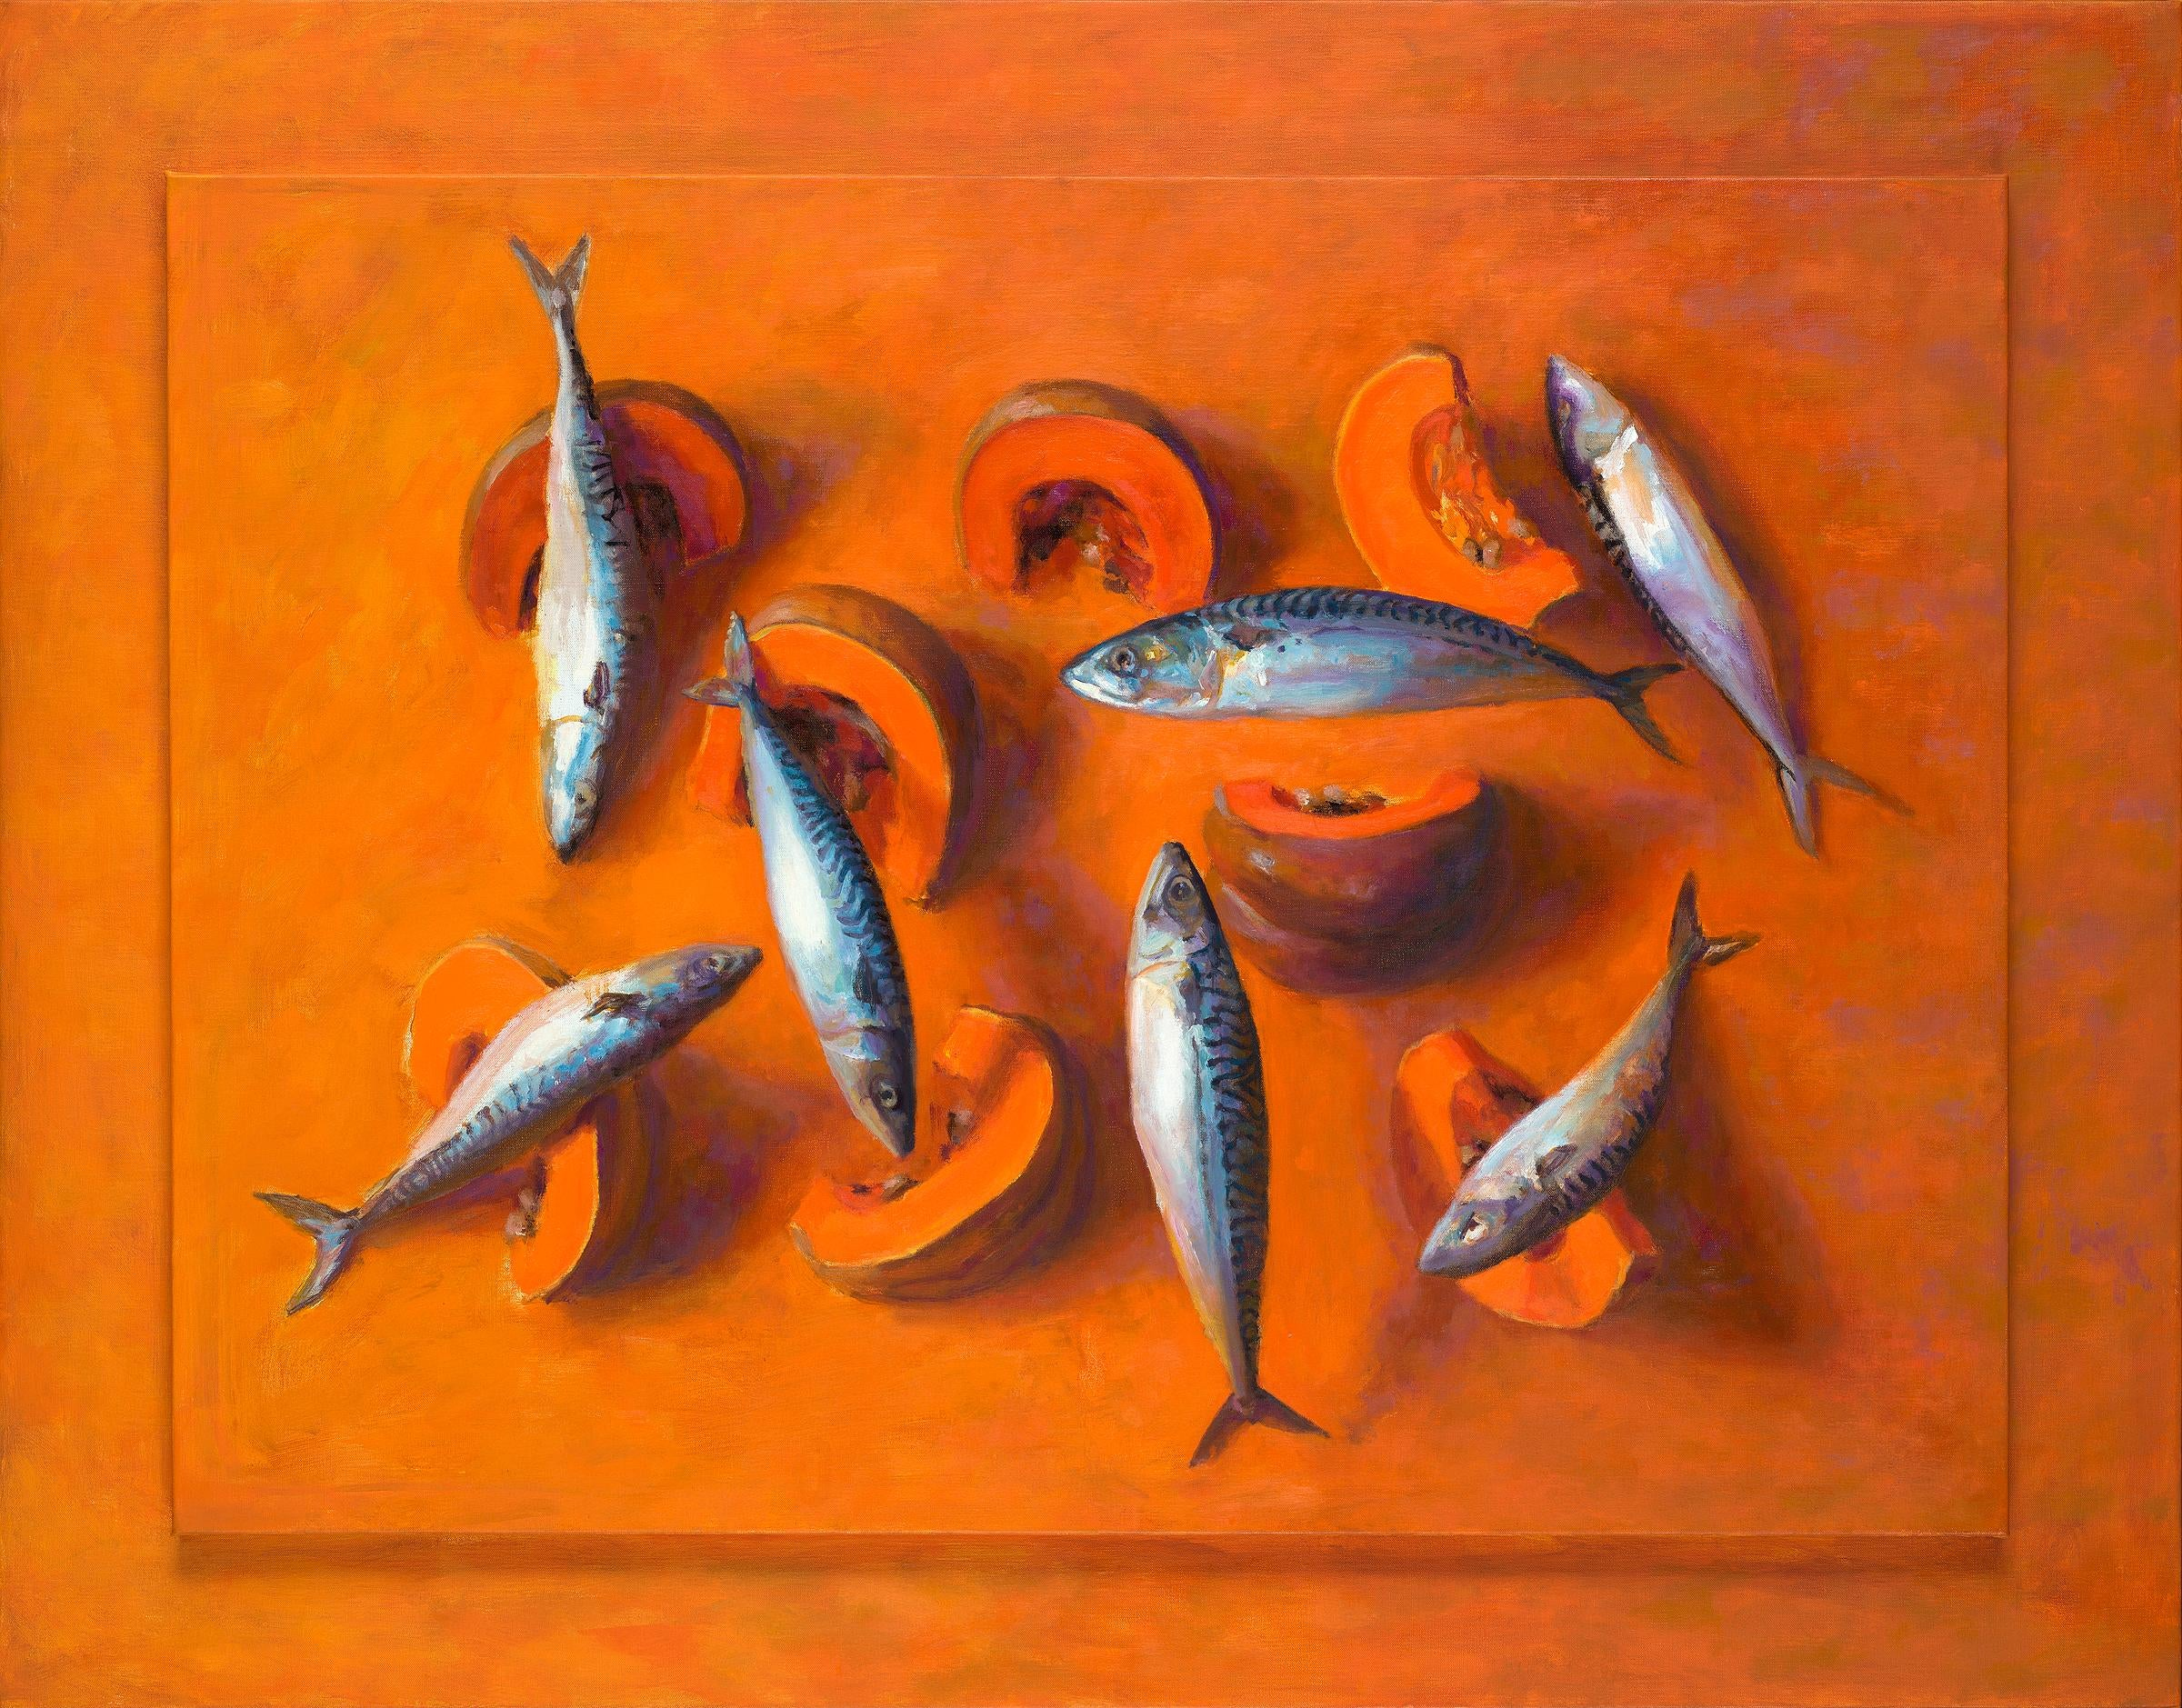 7 (seven) Fishes and One Pumpkin-21st Century Contemporary Still-life Painting